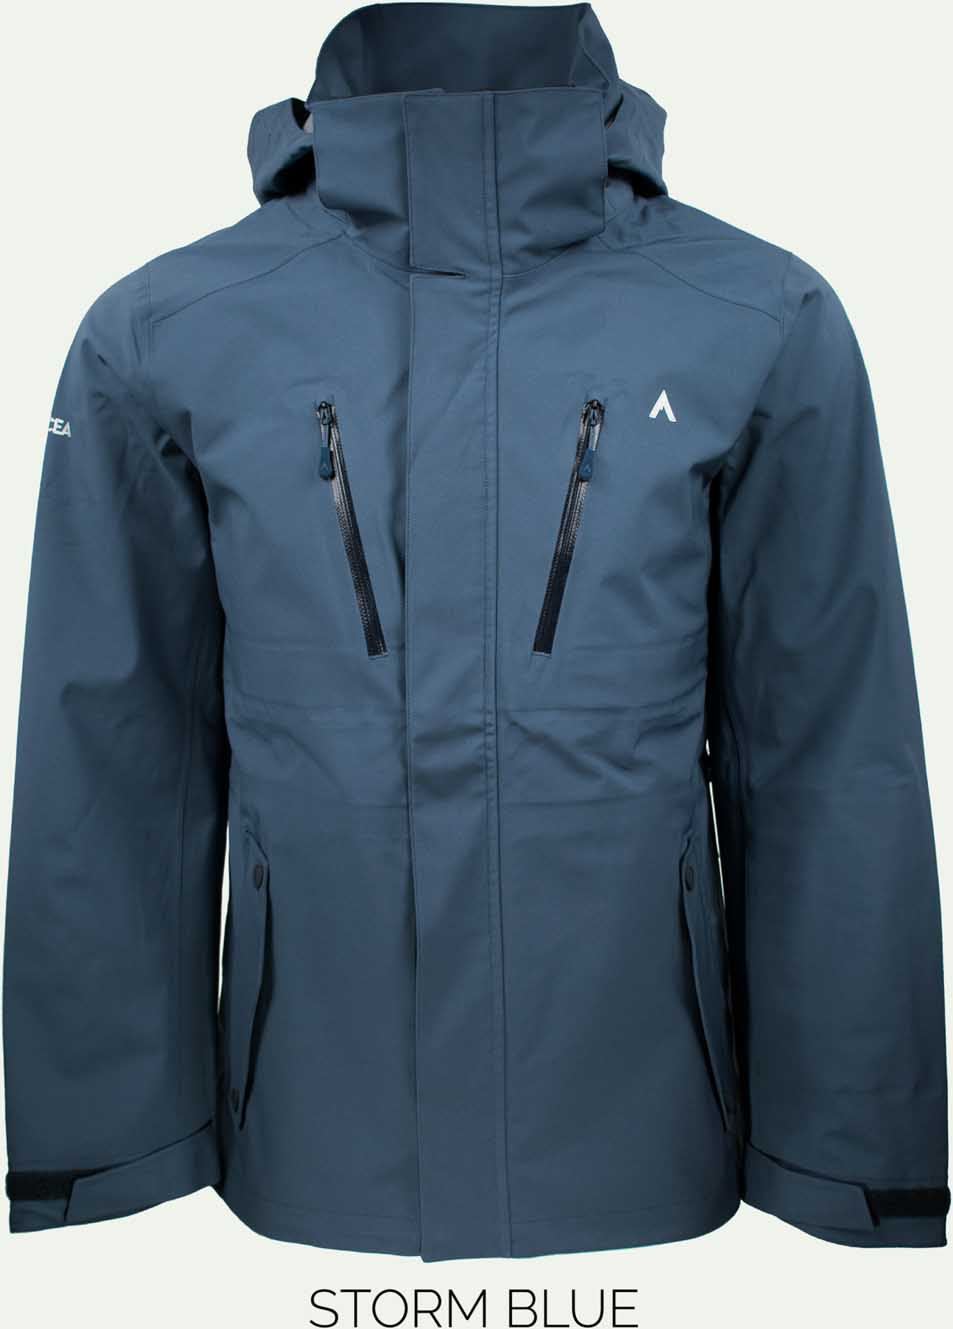 image terracea-station-jacket-storm-blue-copy-jpg